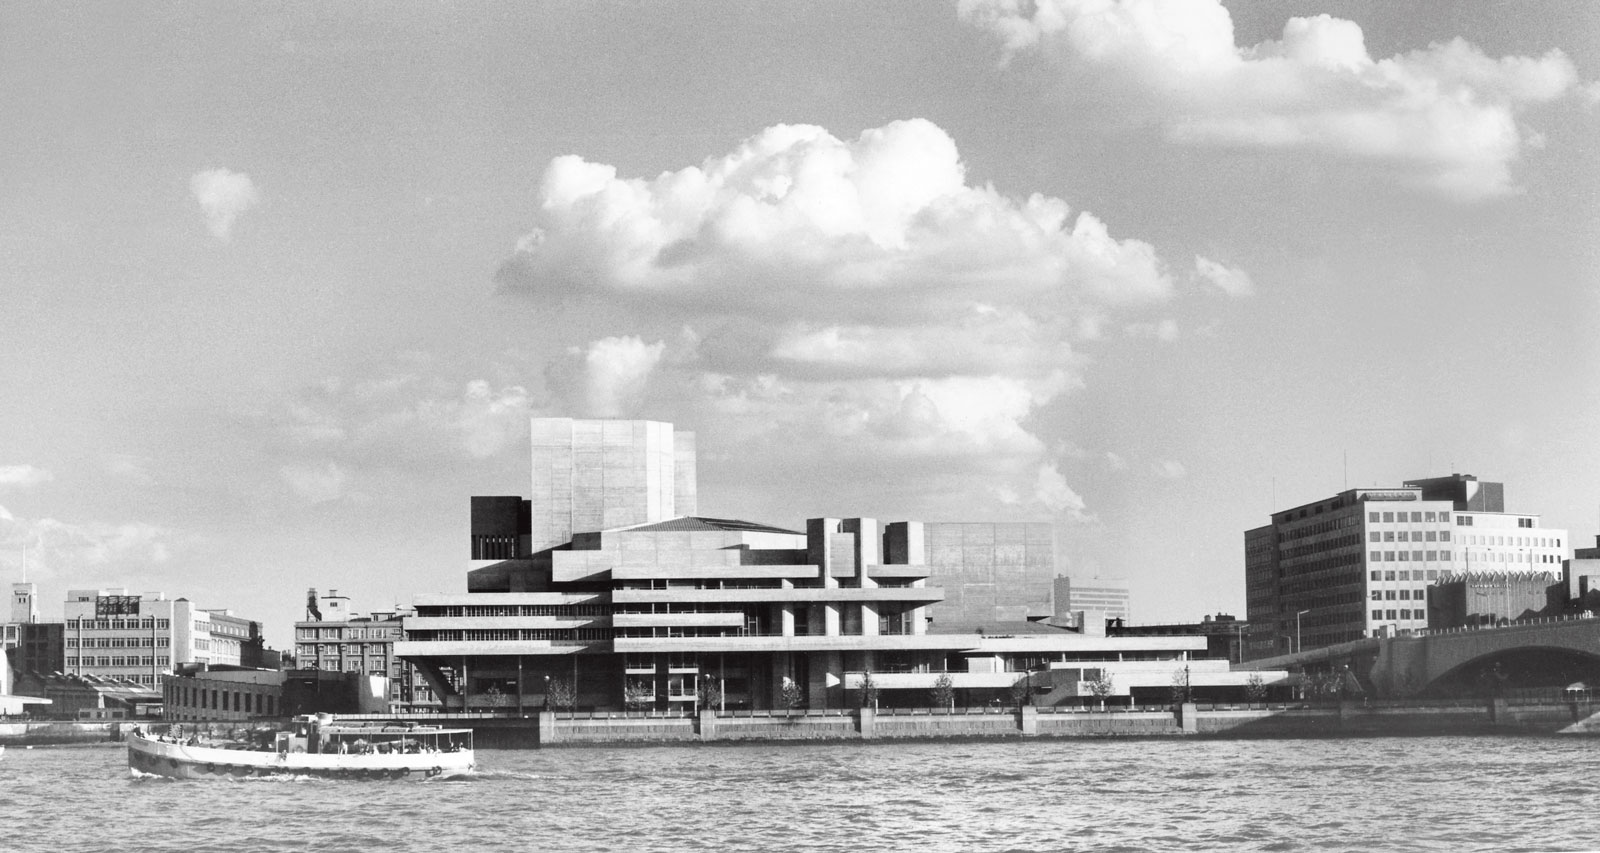 The National Theatre as featured in Atlas of Brutalist Architecture